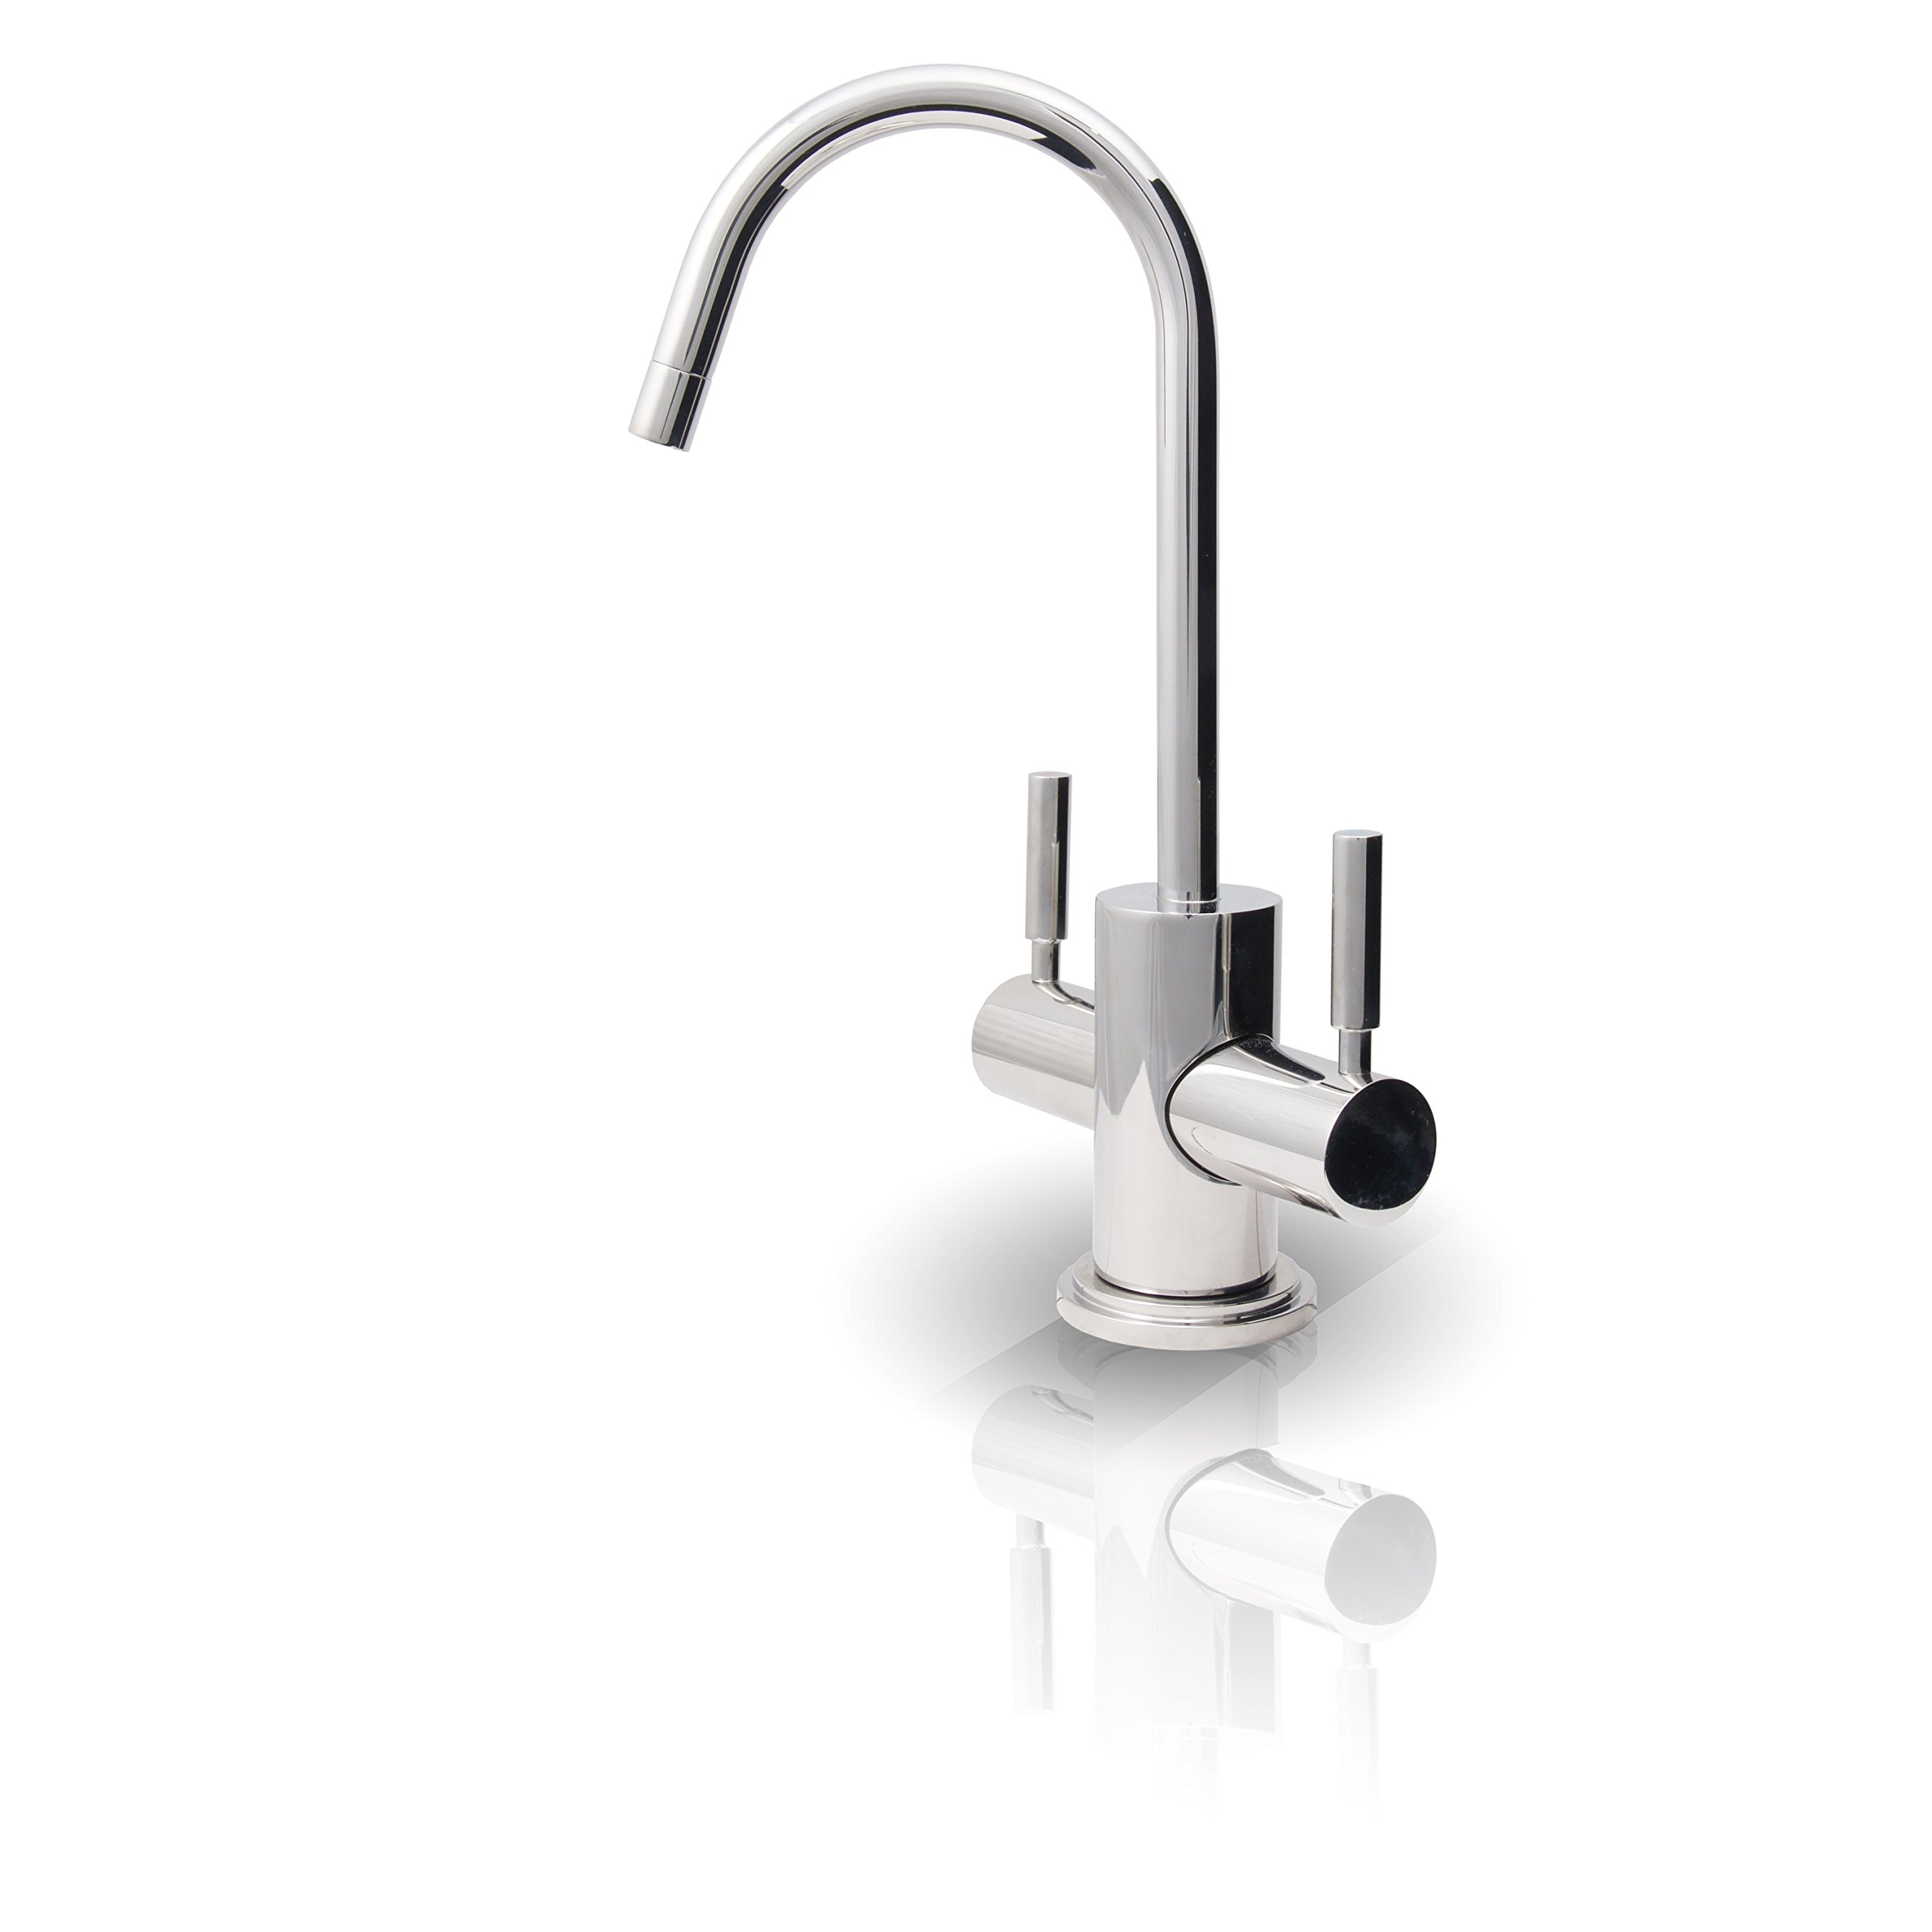 APEC Water Systems FAUCET-HC-WST-CM Instant Hot and Cold Reverse Osmosis Drinking Water Dispenser Faucet Chrome